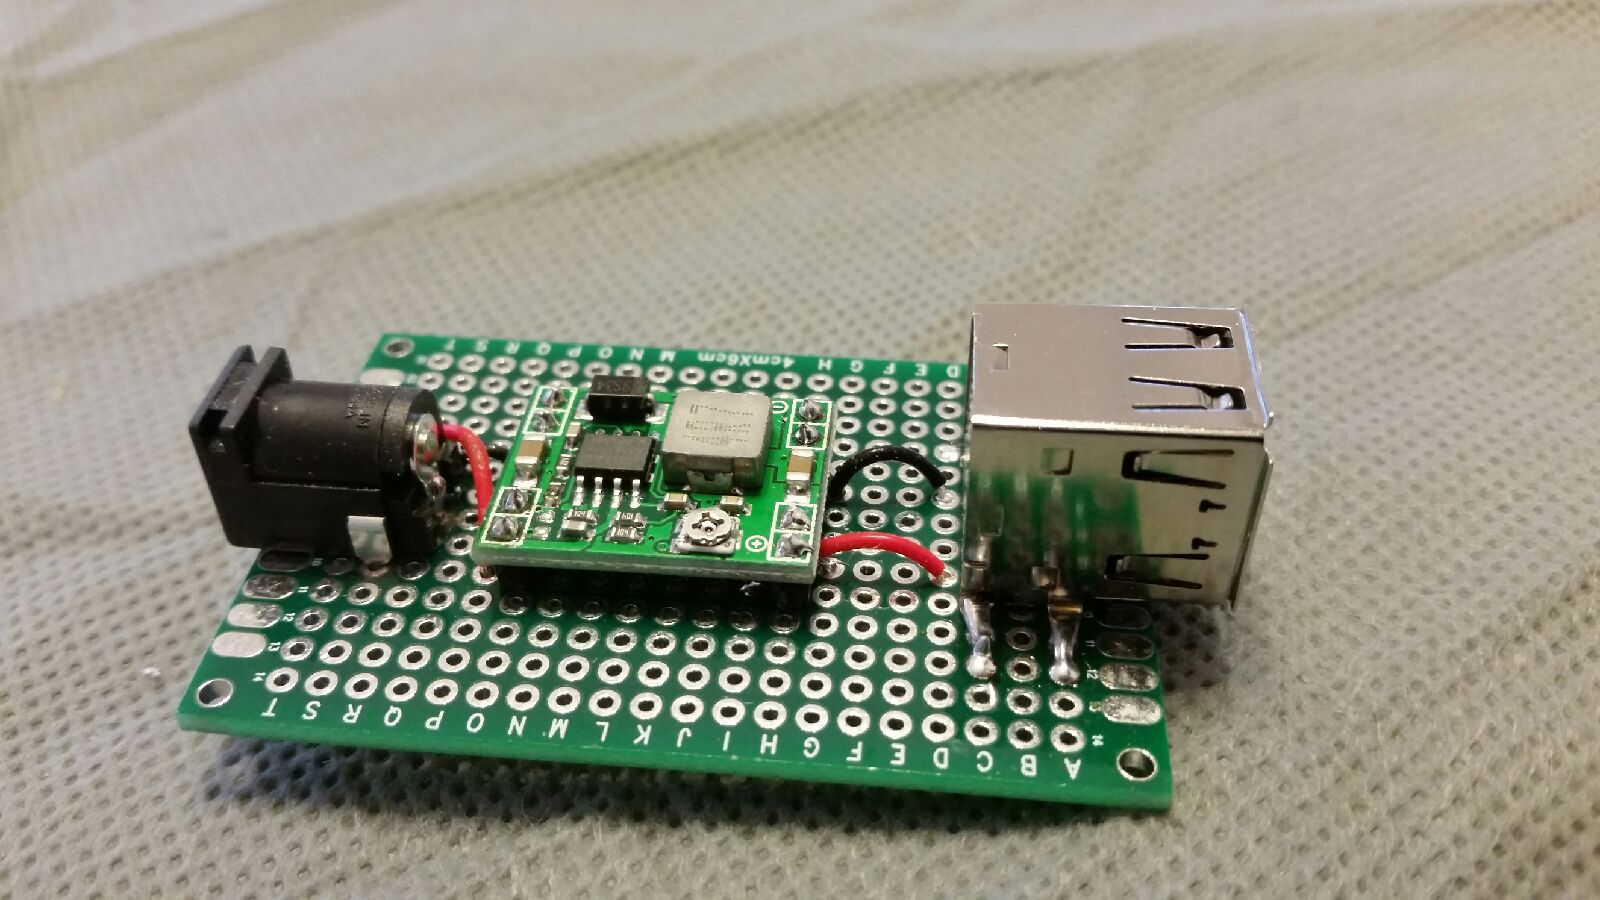 Electronics: Voltage Regulators-Build a USB Charger